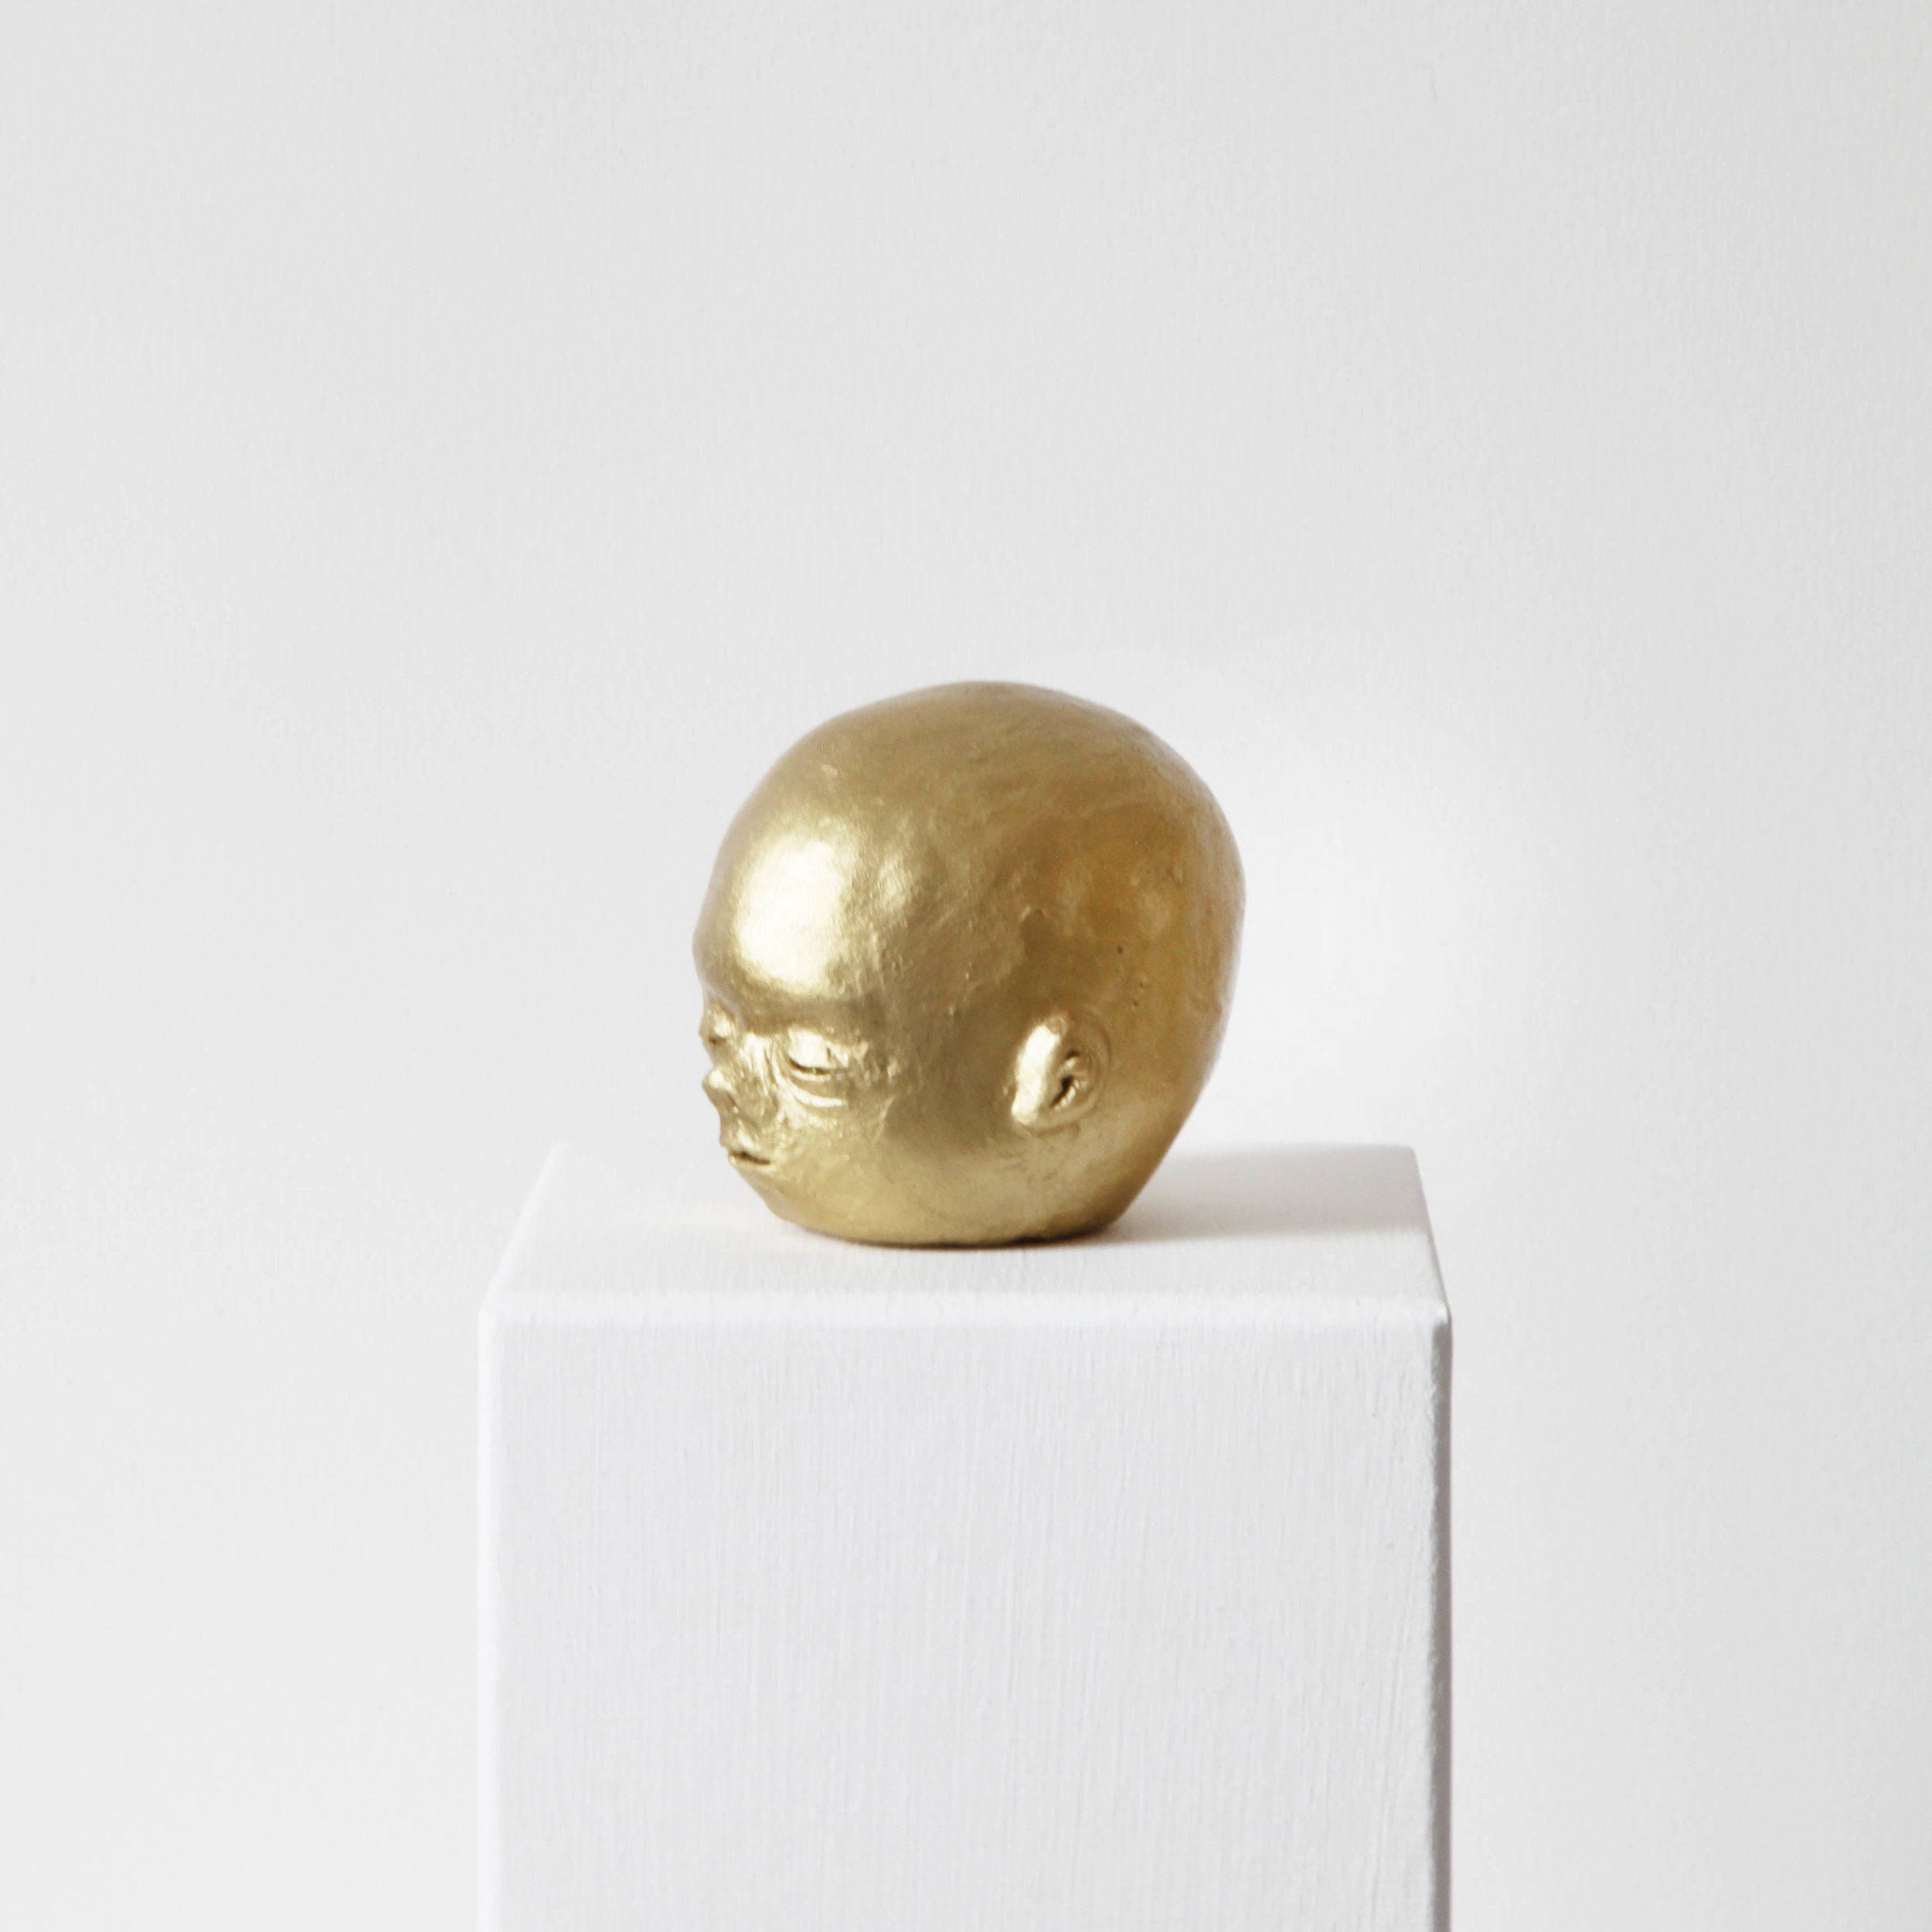 Facial development of the human embryo V  , 2017, raw clay, yellow gold pigment, lacquer and varnish, 8x7,2x8,3cm